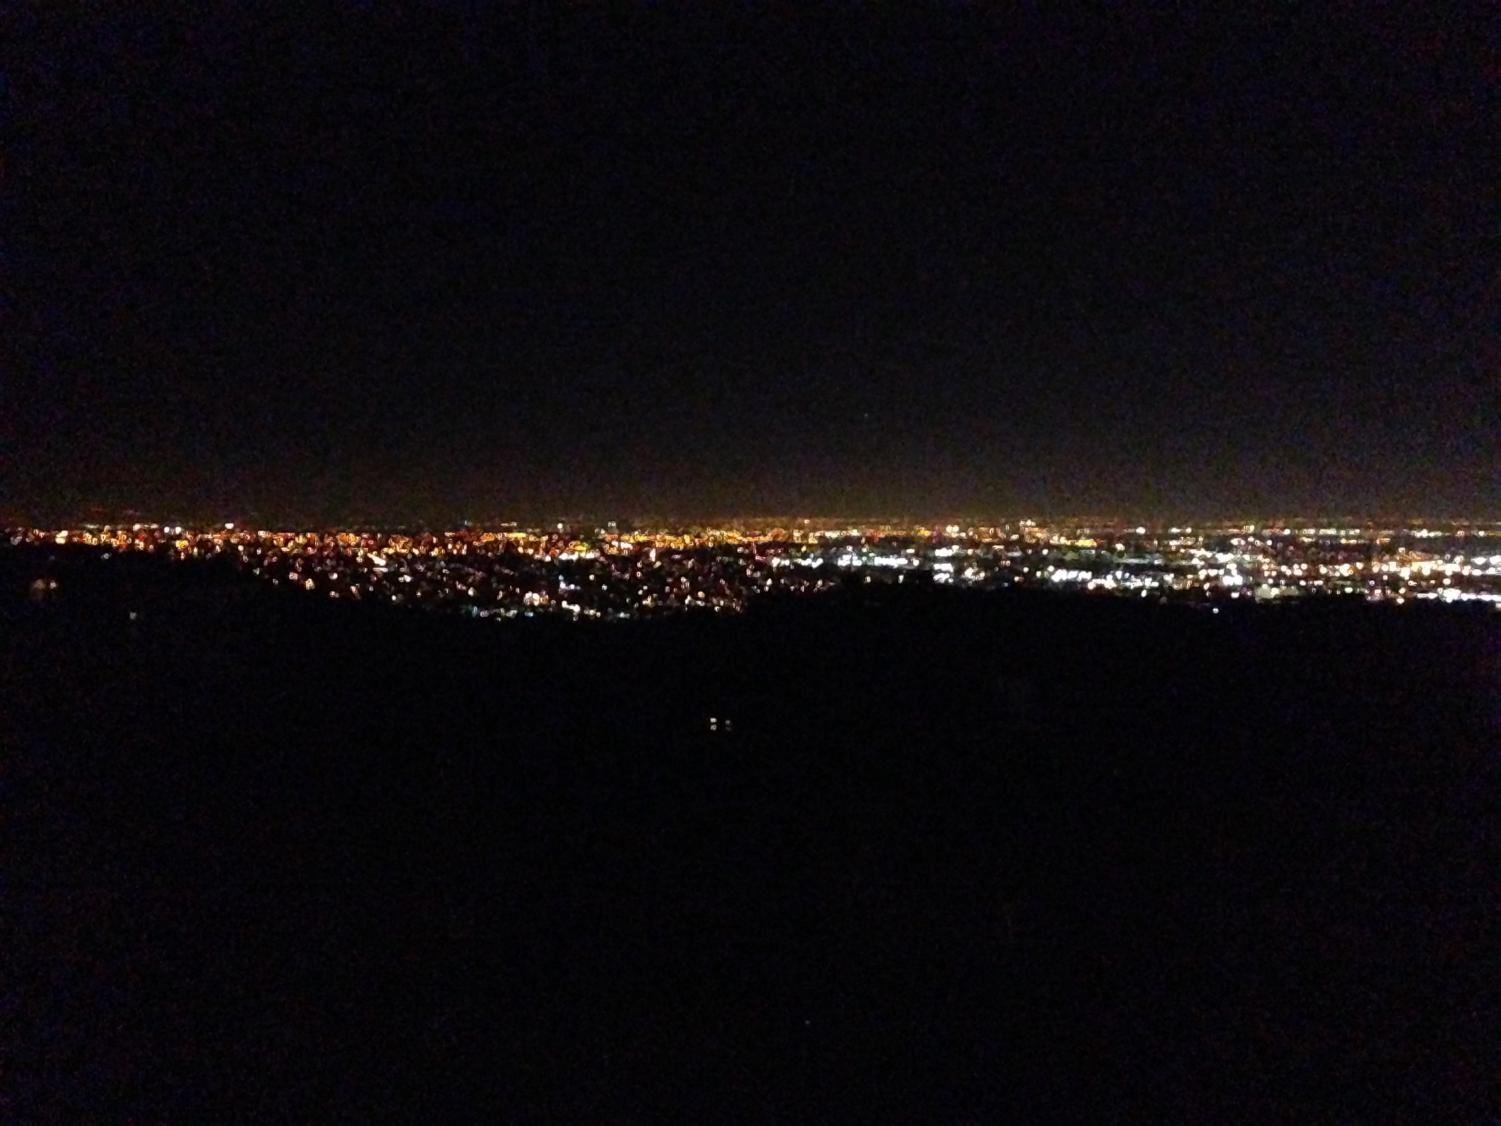 The Milpitas skyline after dark. A new study has discovered that the global light pollution problem is worsening.